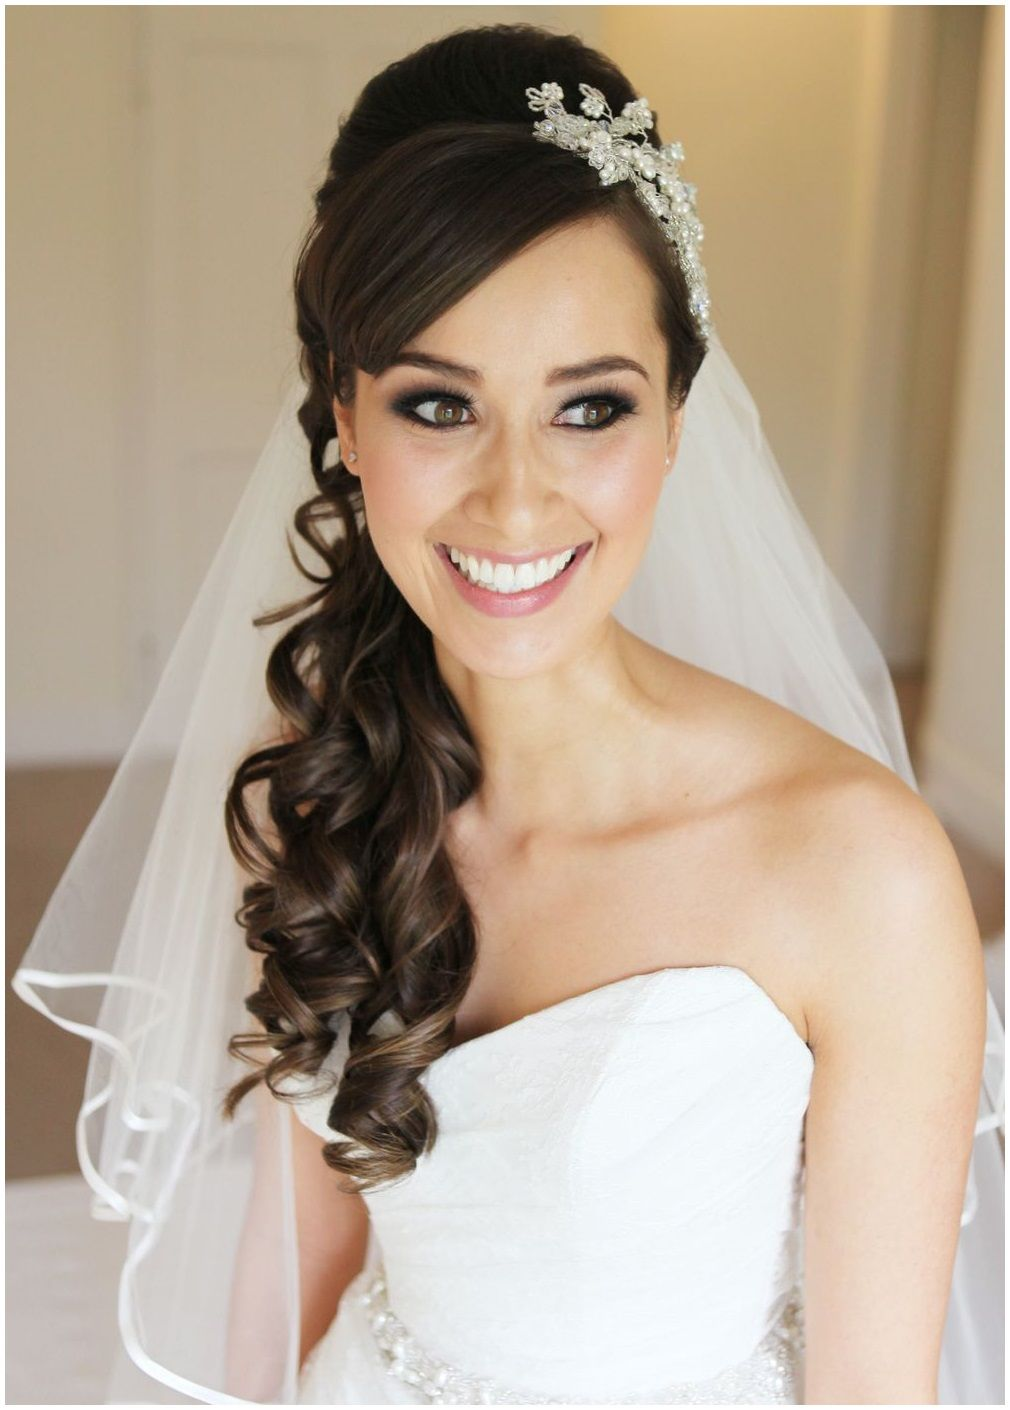 wedding hair down with headband and veil | hair | bride